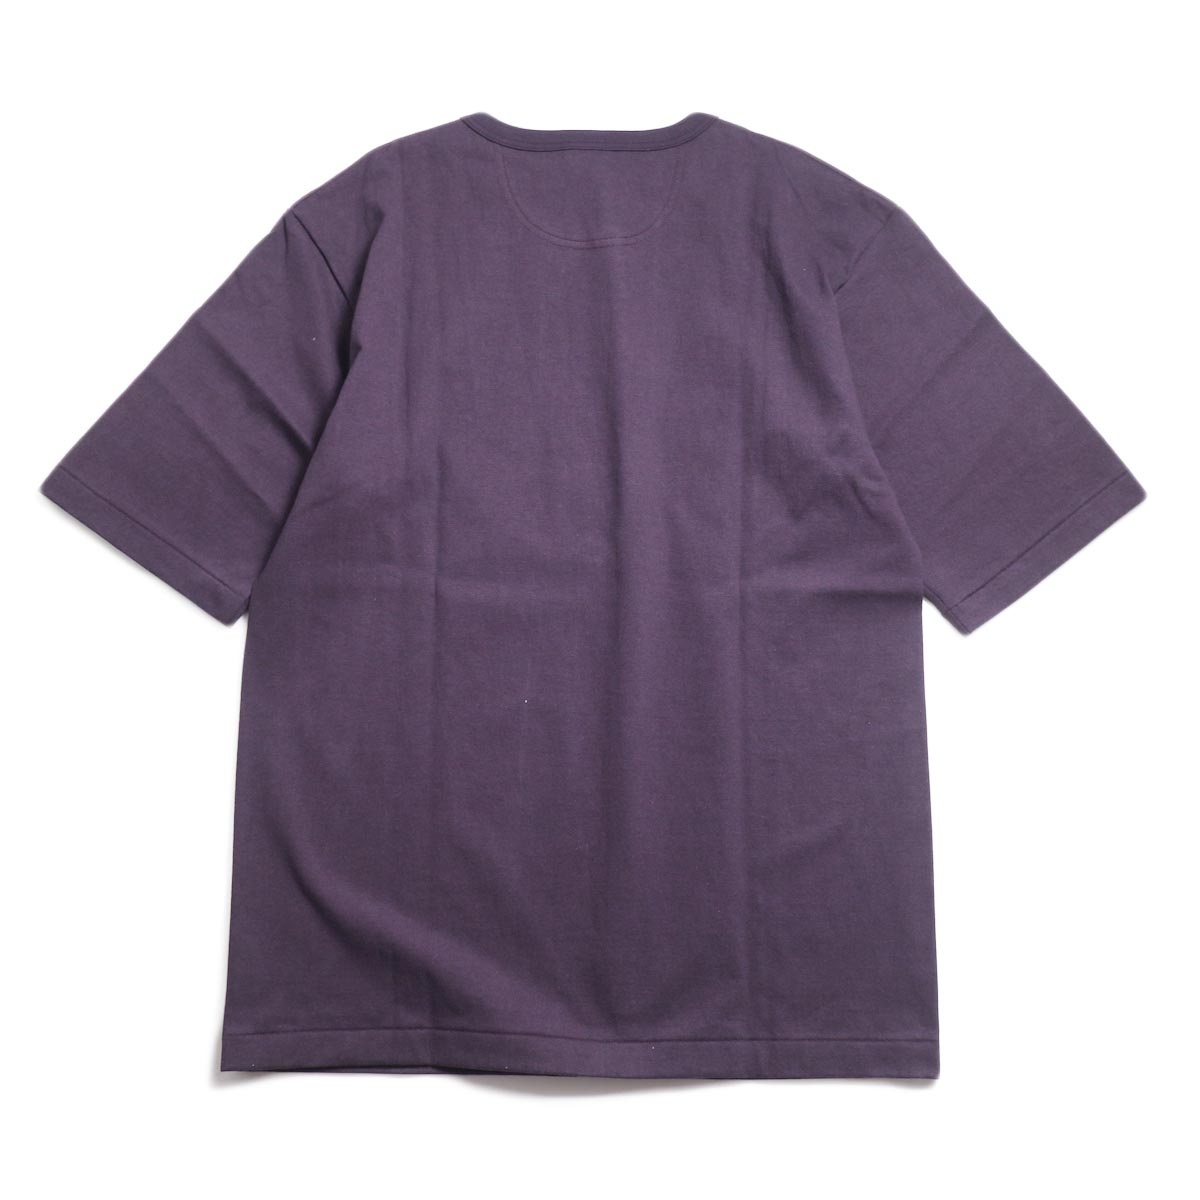 A VONTADE / 1/2 Sleeve Classic Henly Shirts -Plum 背面